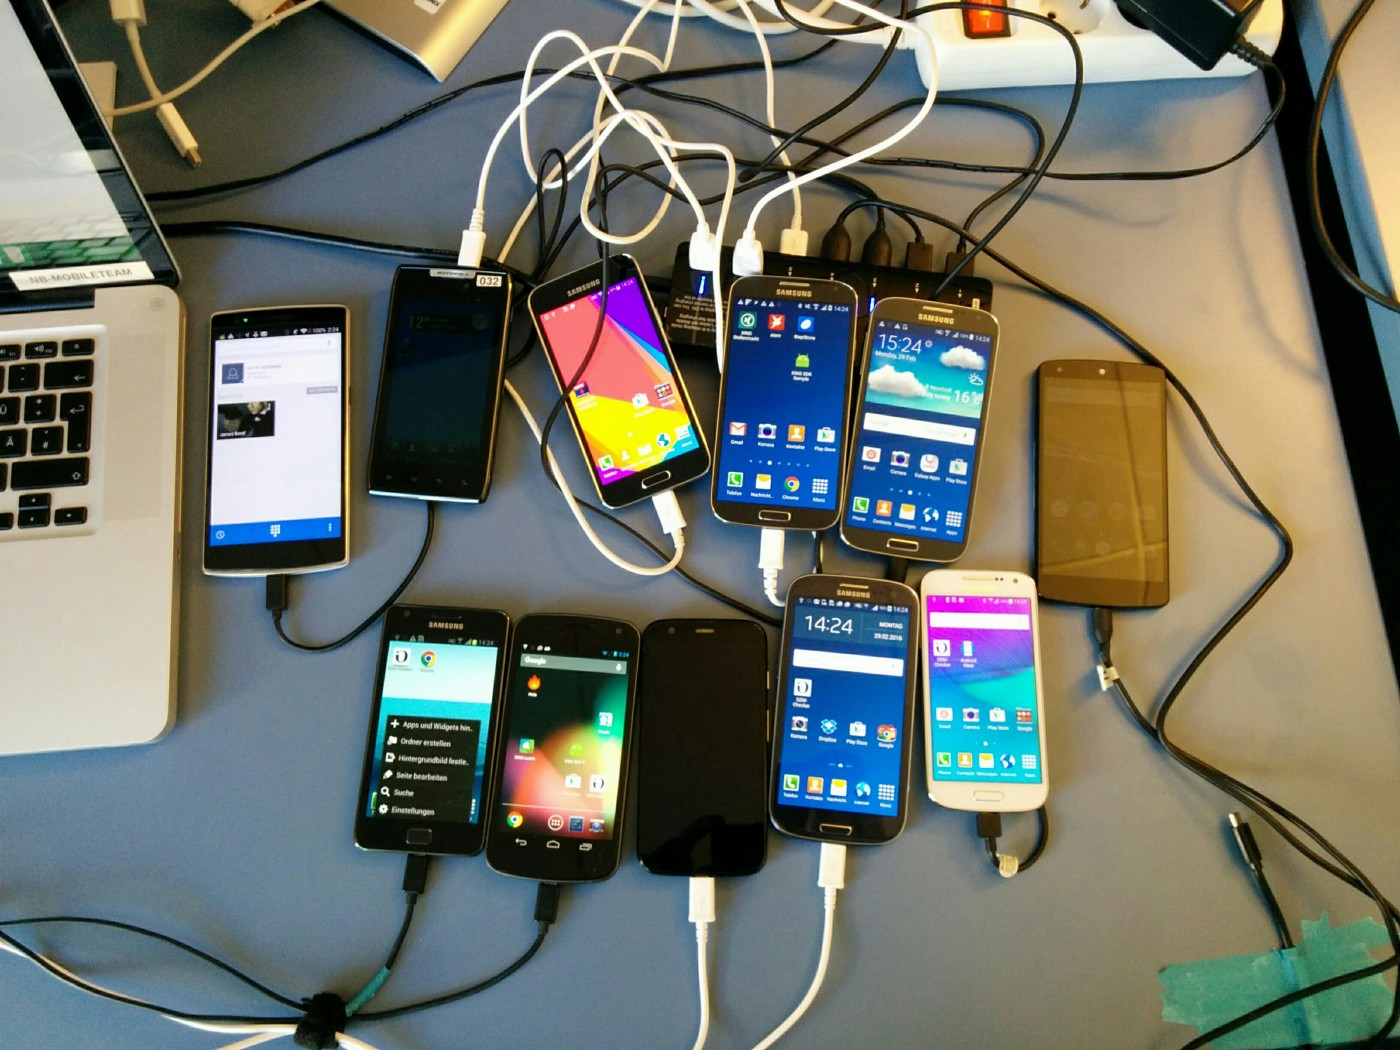 Android Smartphone Test Farm - XING Engineering